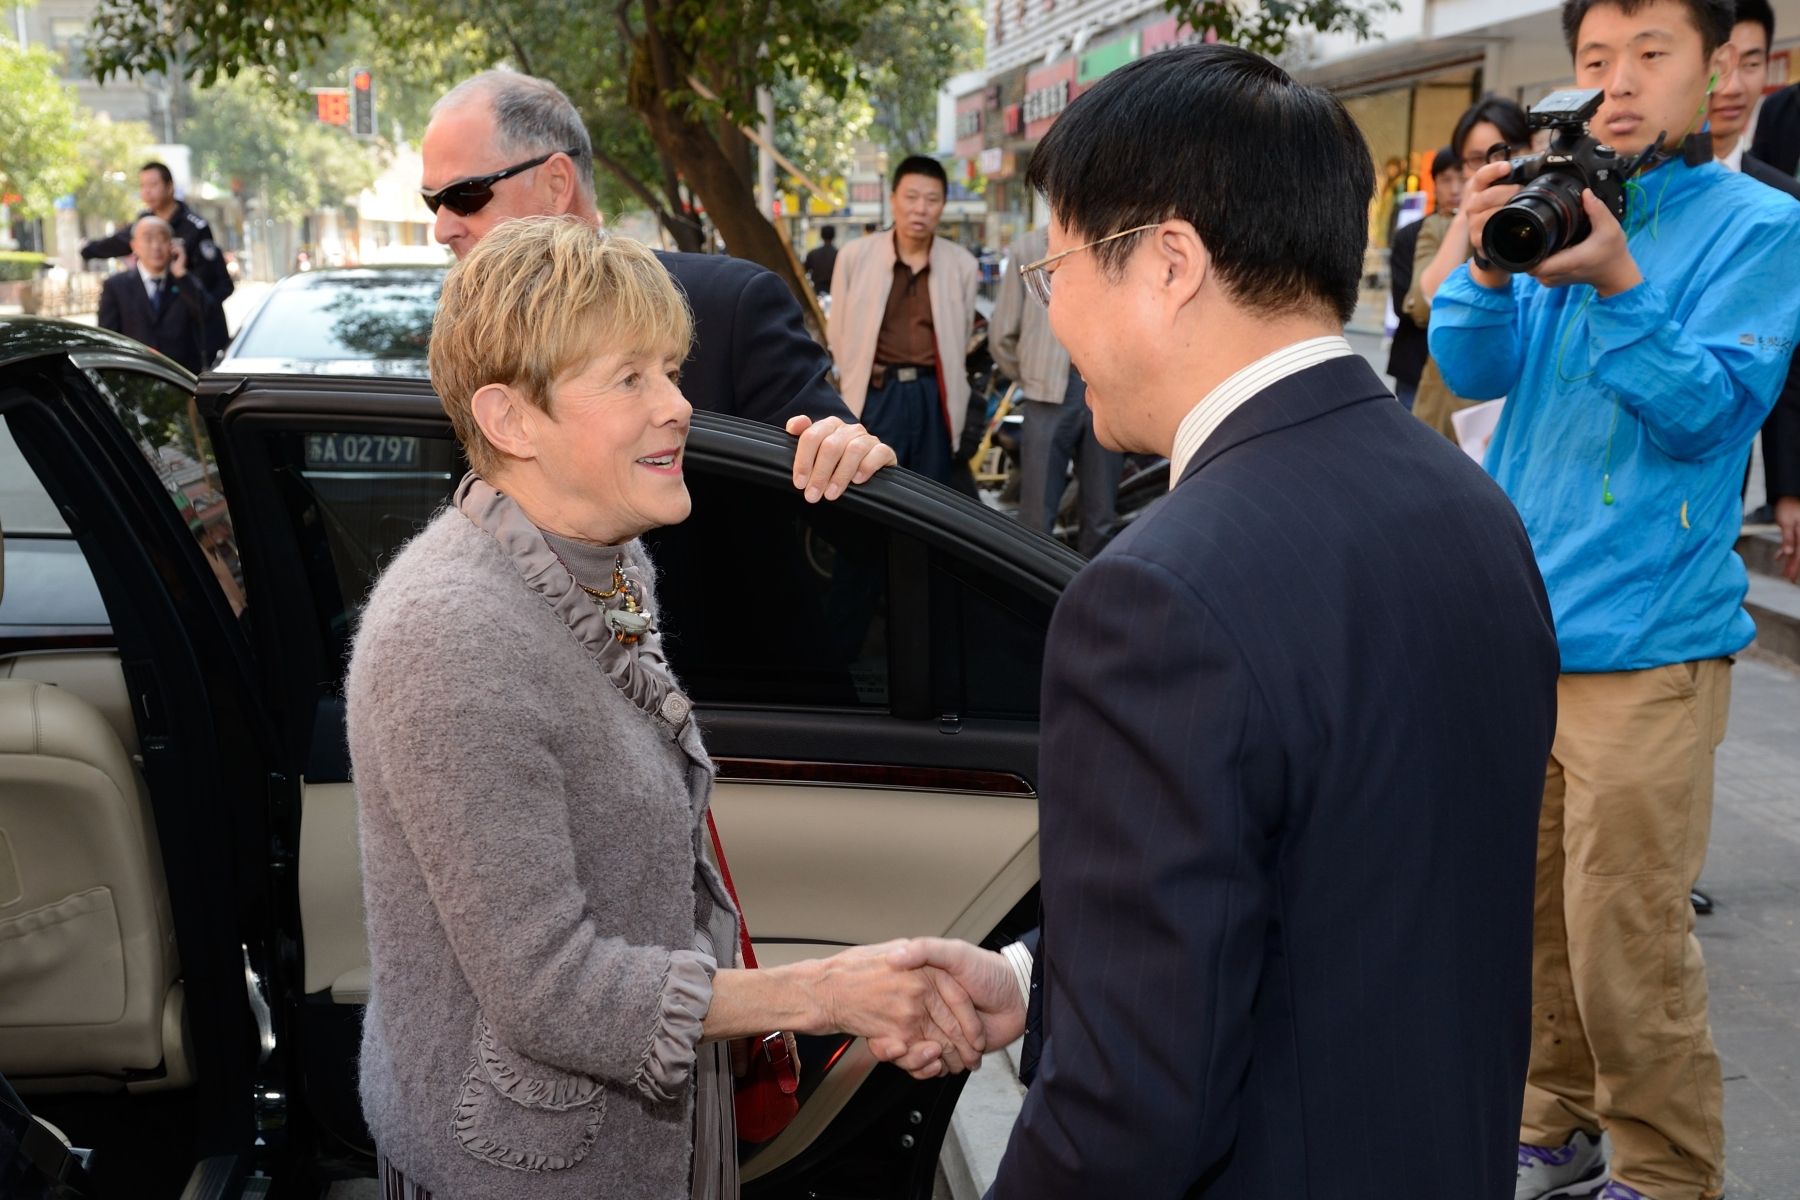 Upon their arrival in Nanjing, Their Excellencies and the Canadian delegation were greeted by local Chinese officials.